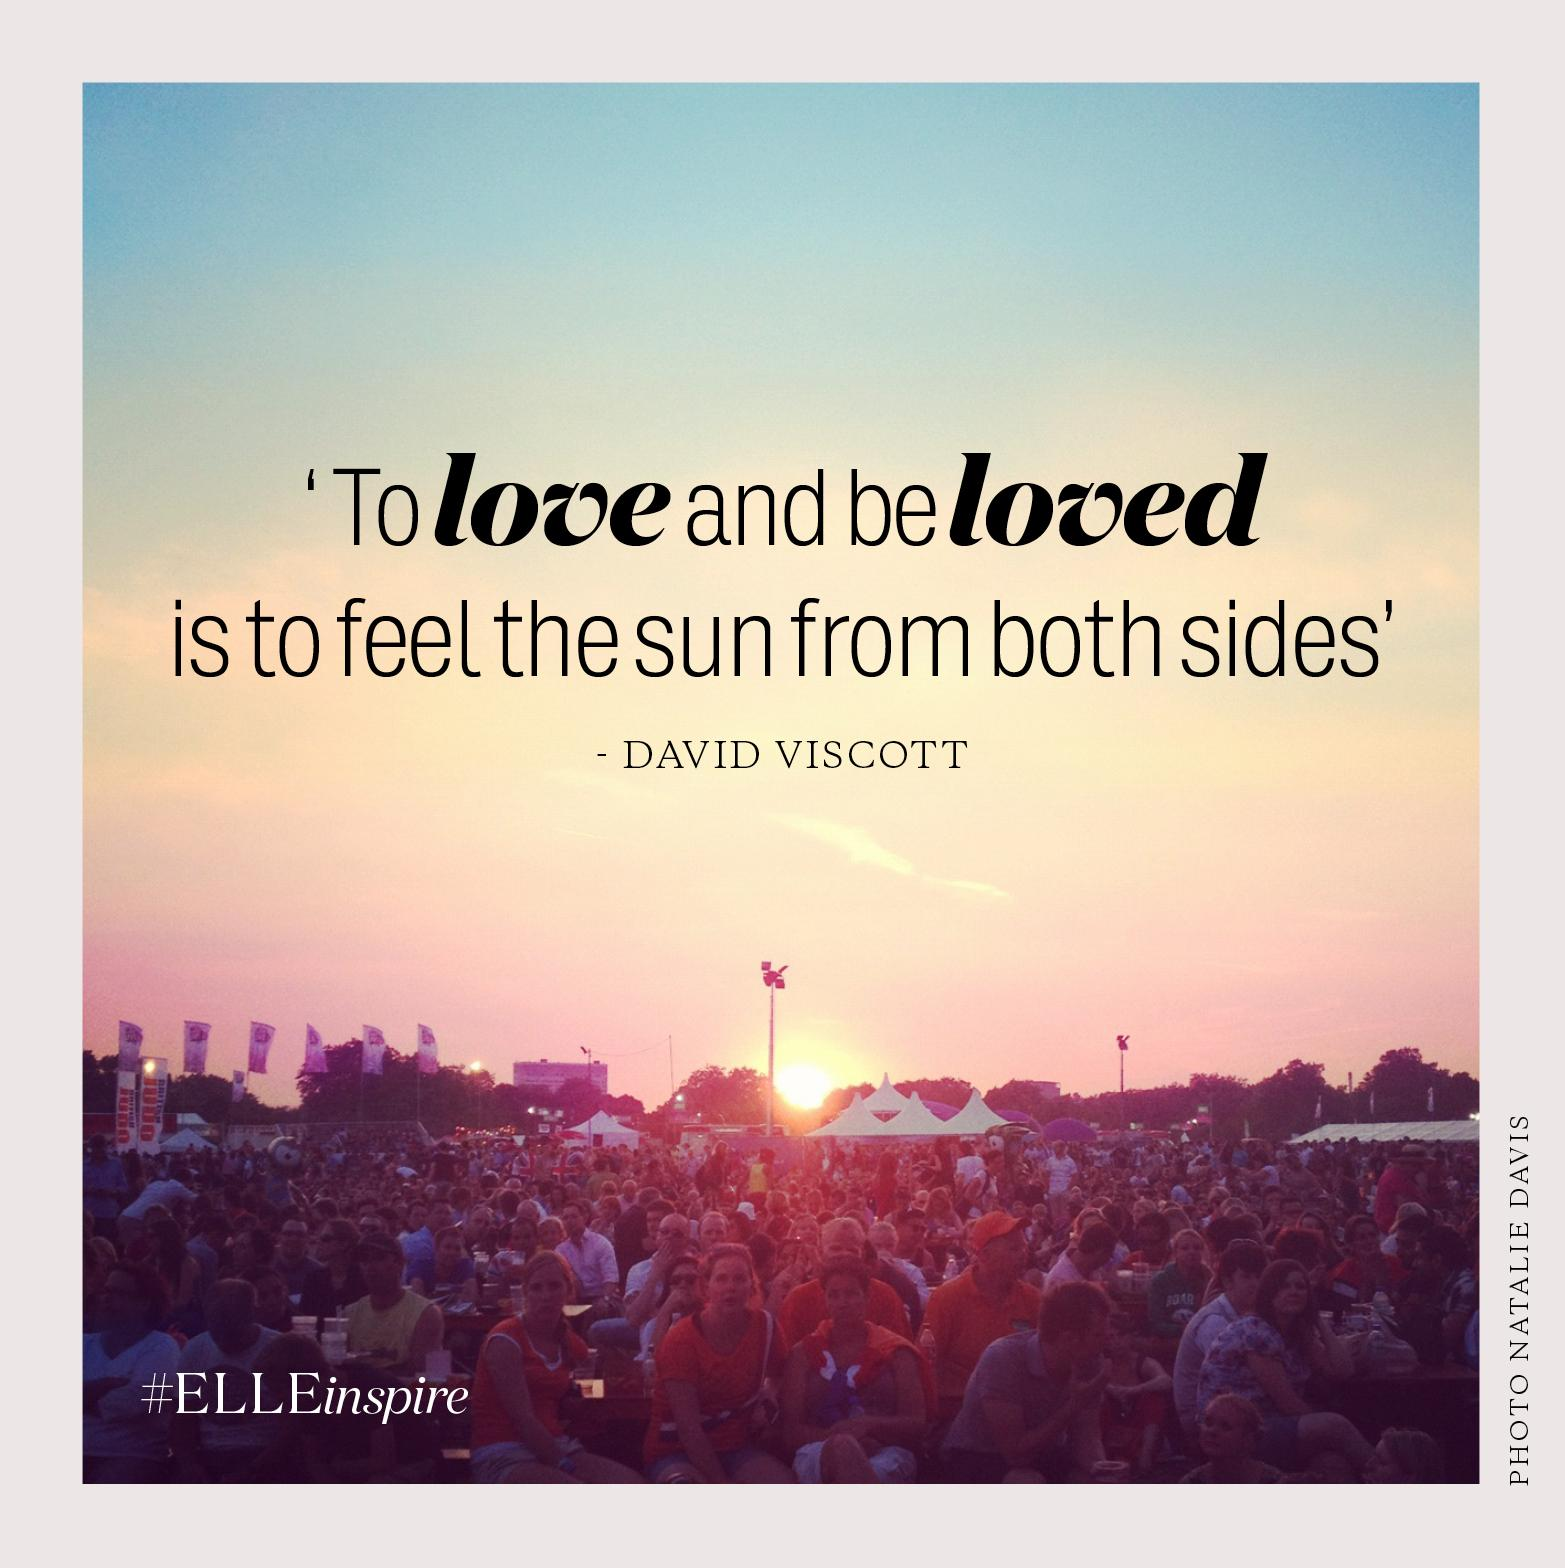 'To love and be loved is to feel the sun on both sides.' David Viscott #ELLEinspire http://t.co/5VuZvXHdsk http://t.co/tz88zq4x3O